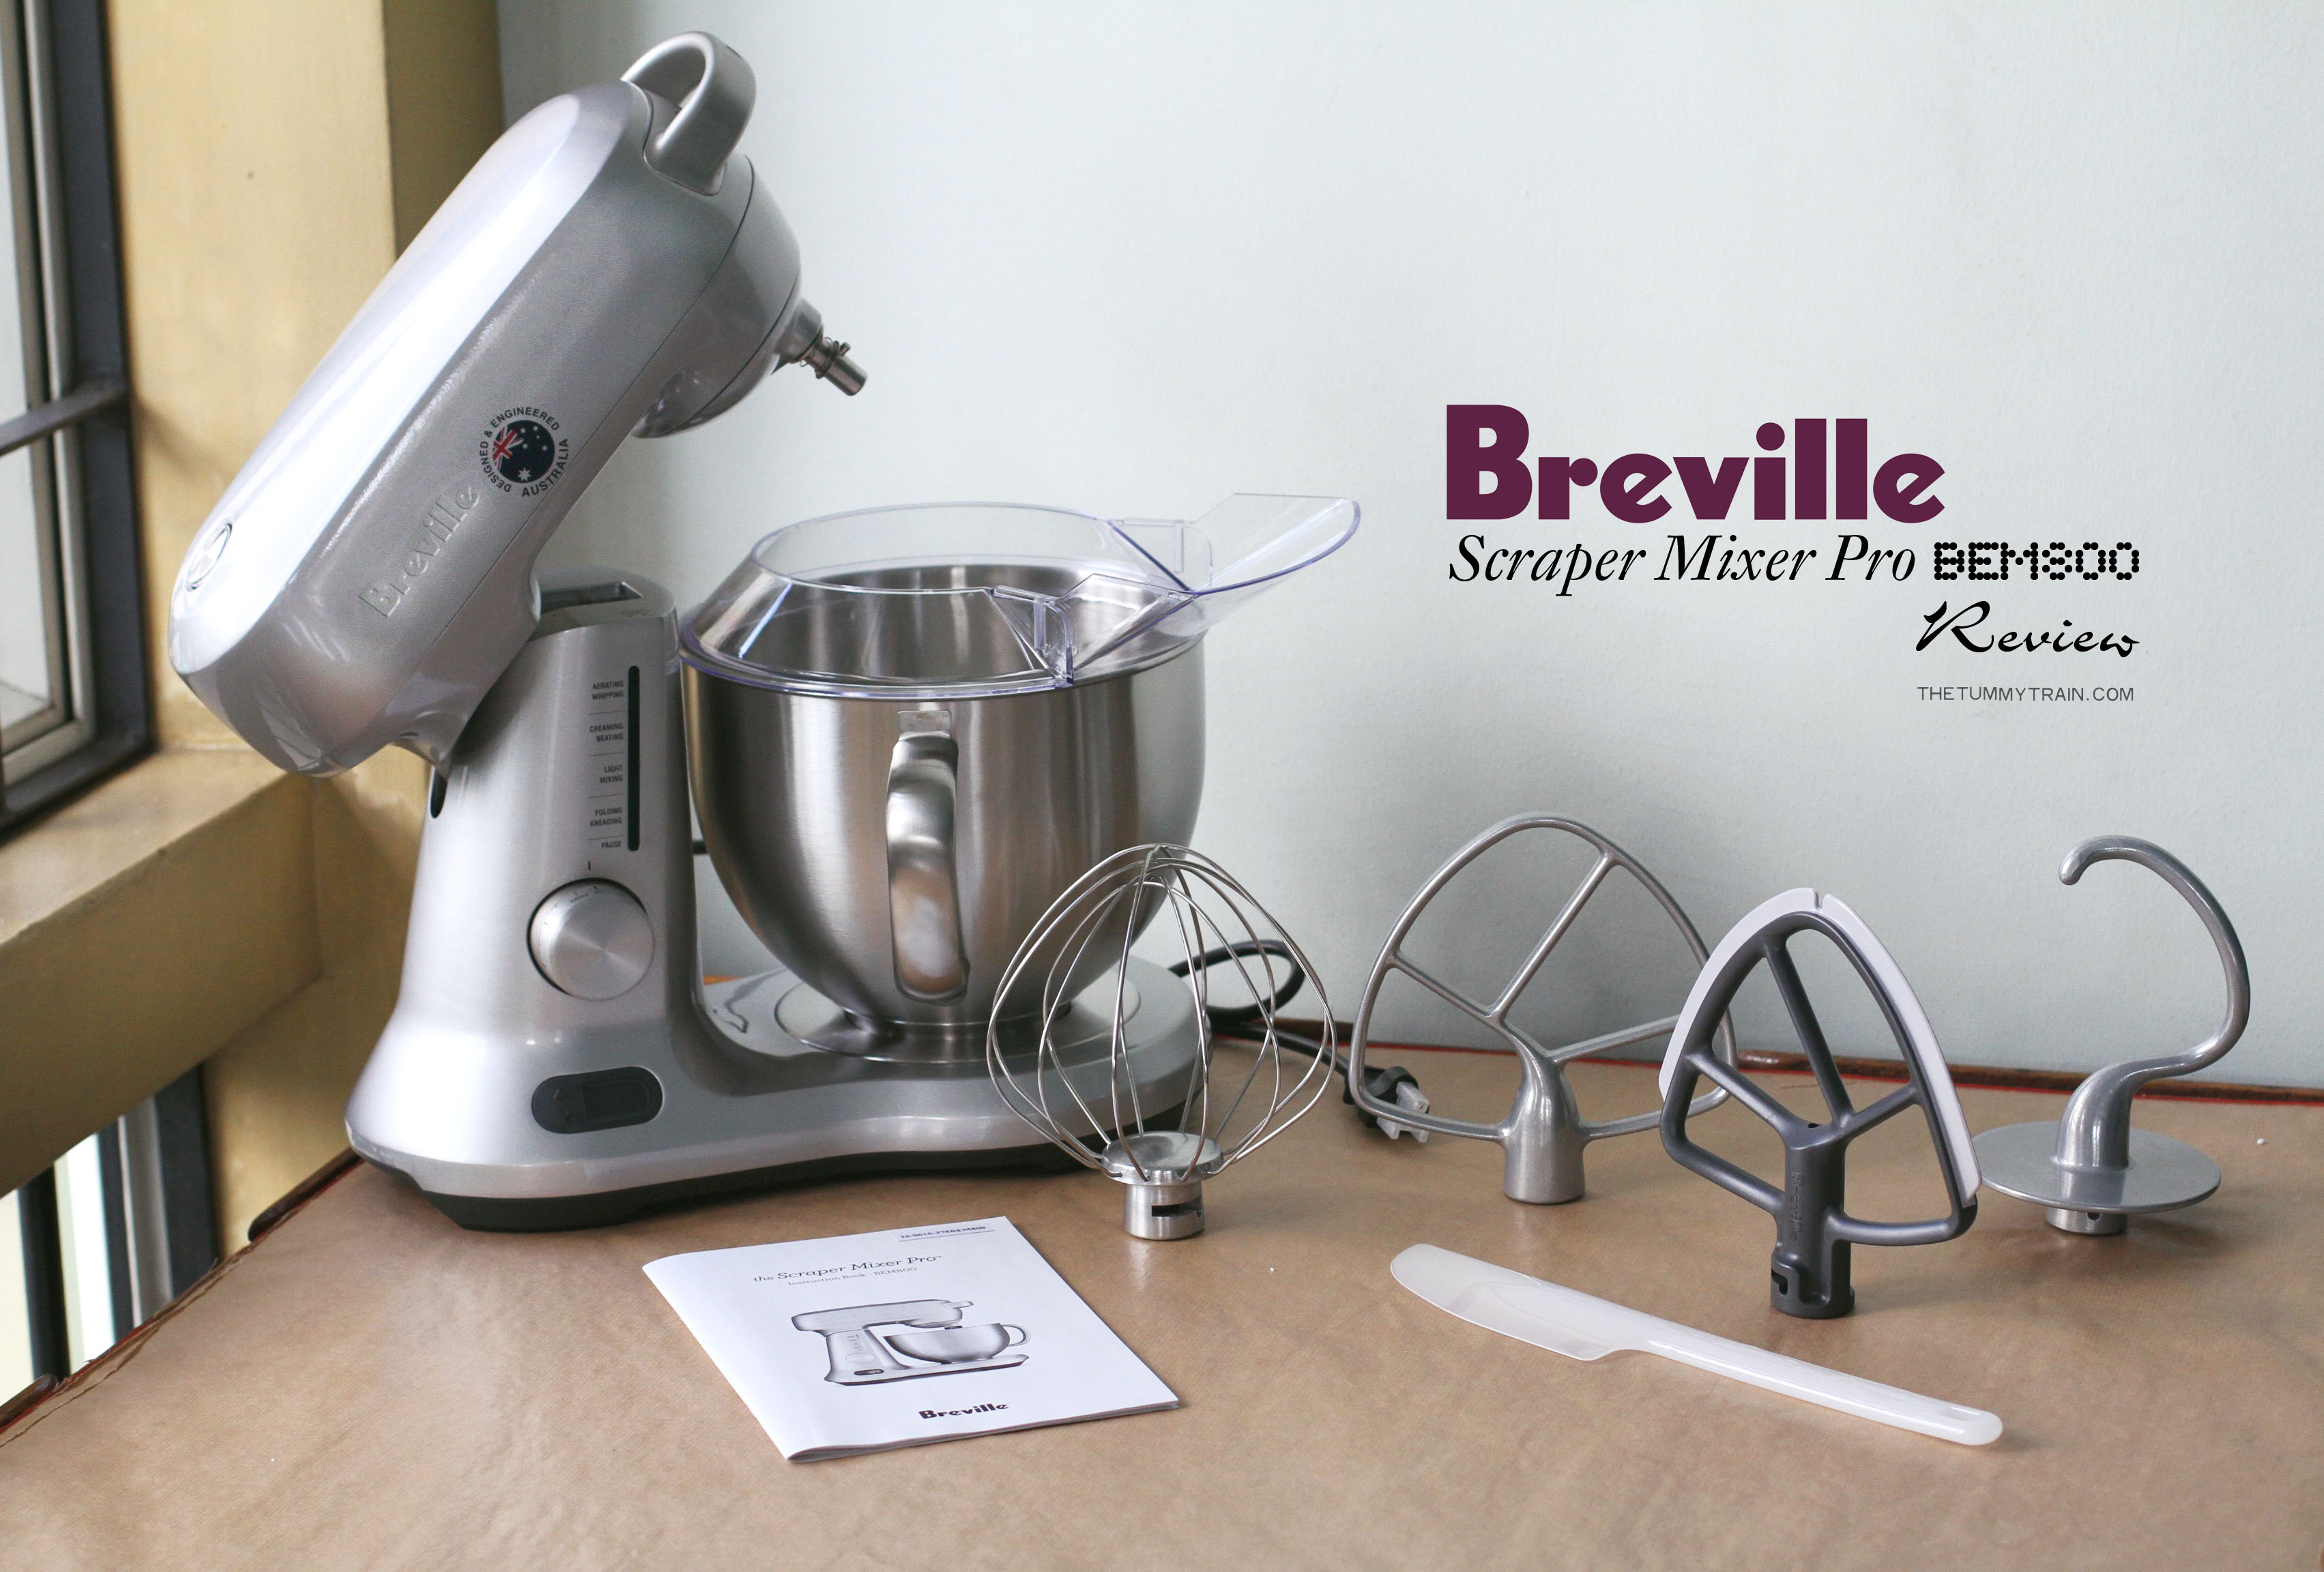 Breville Review 1 - A review on the Breville Scraper Mixer Pro BEM800